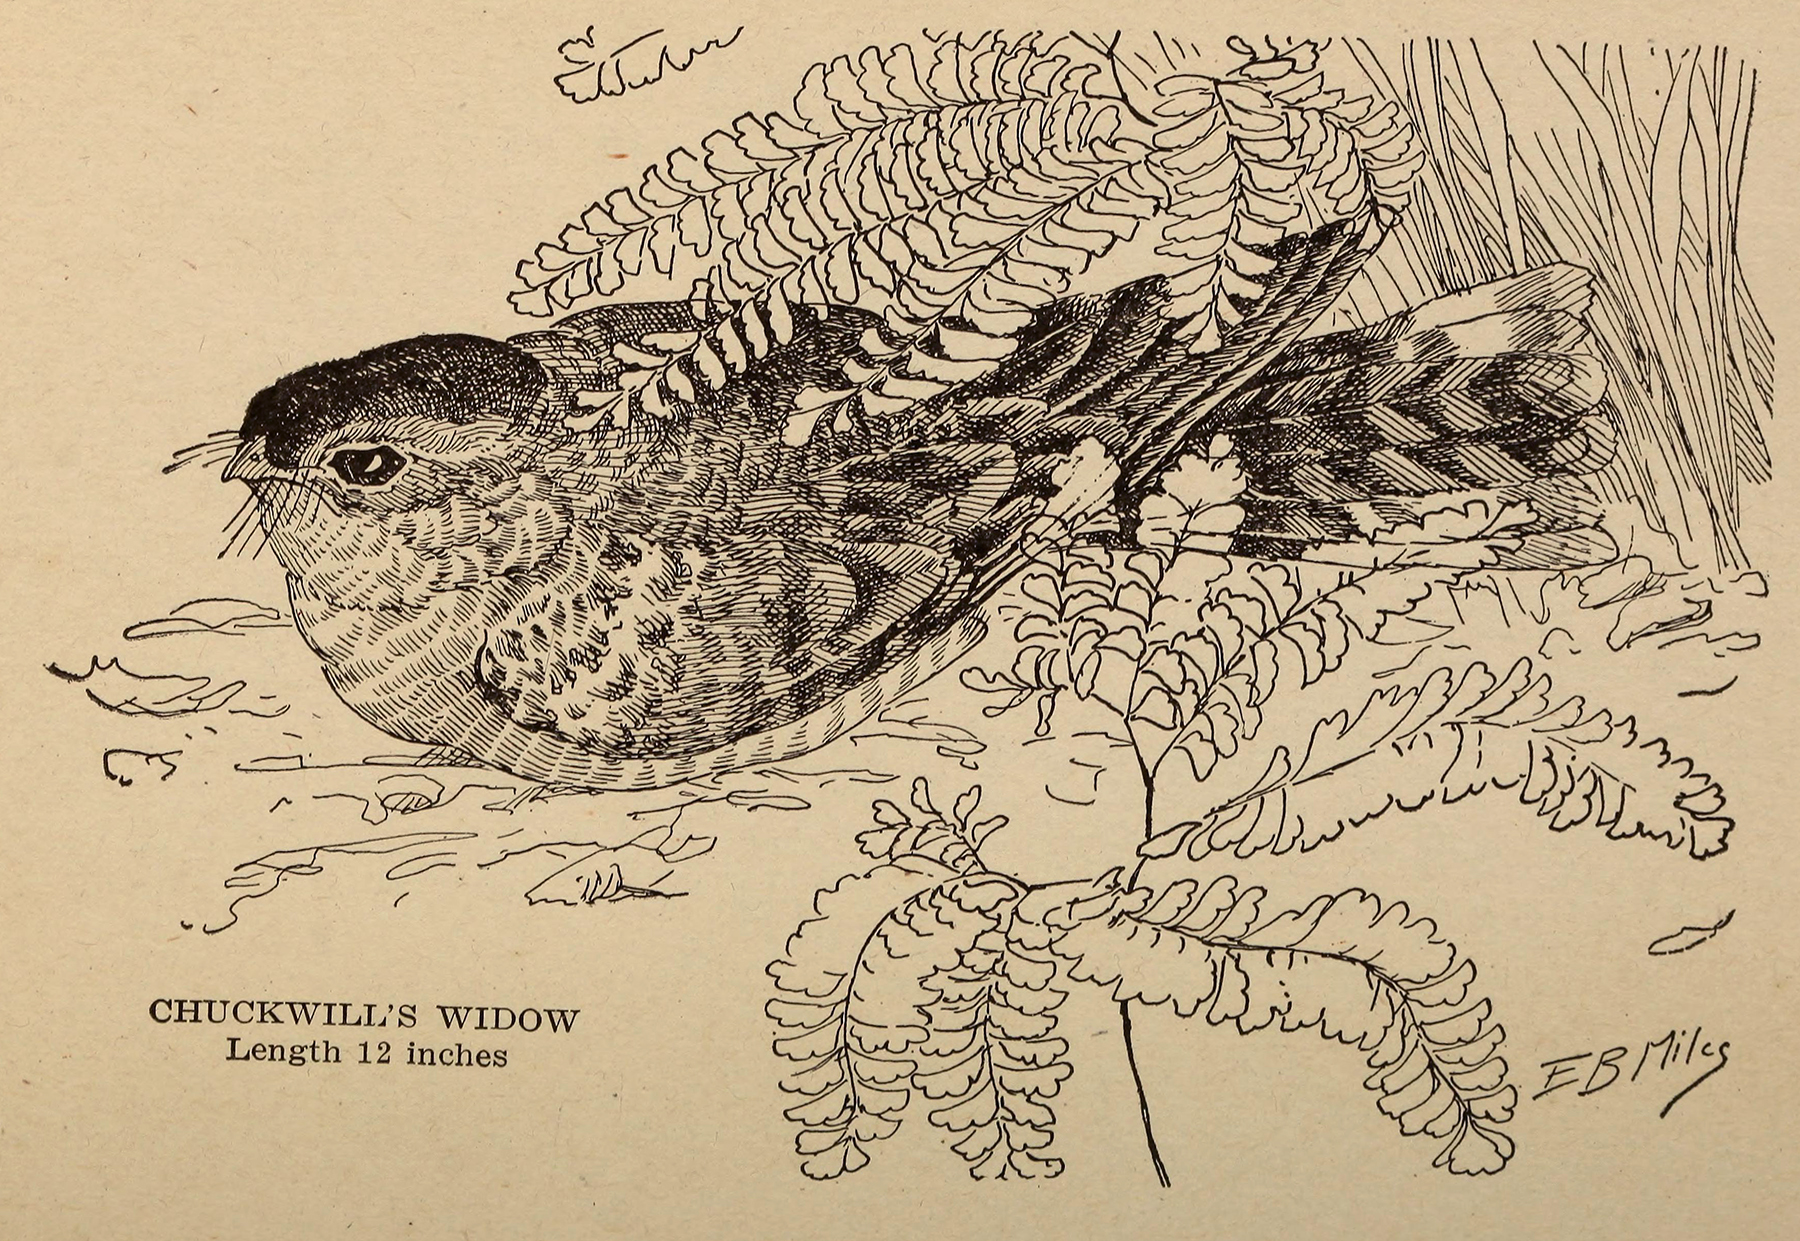 black and white illustration of a bird, chuckwill's widow, hiding within foliage